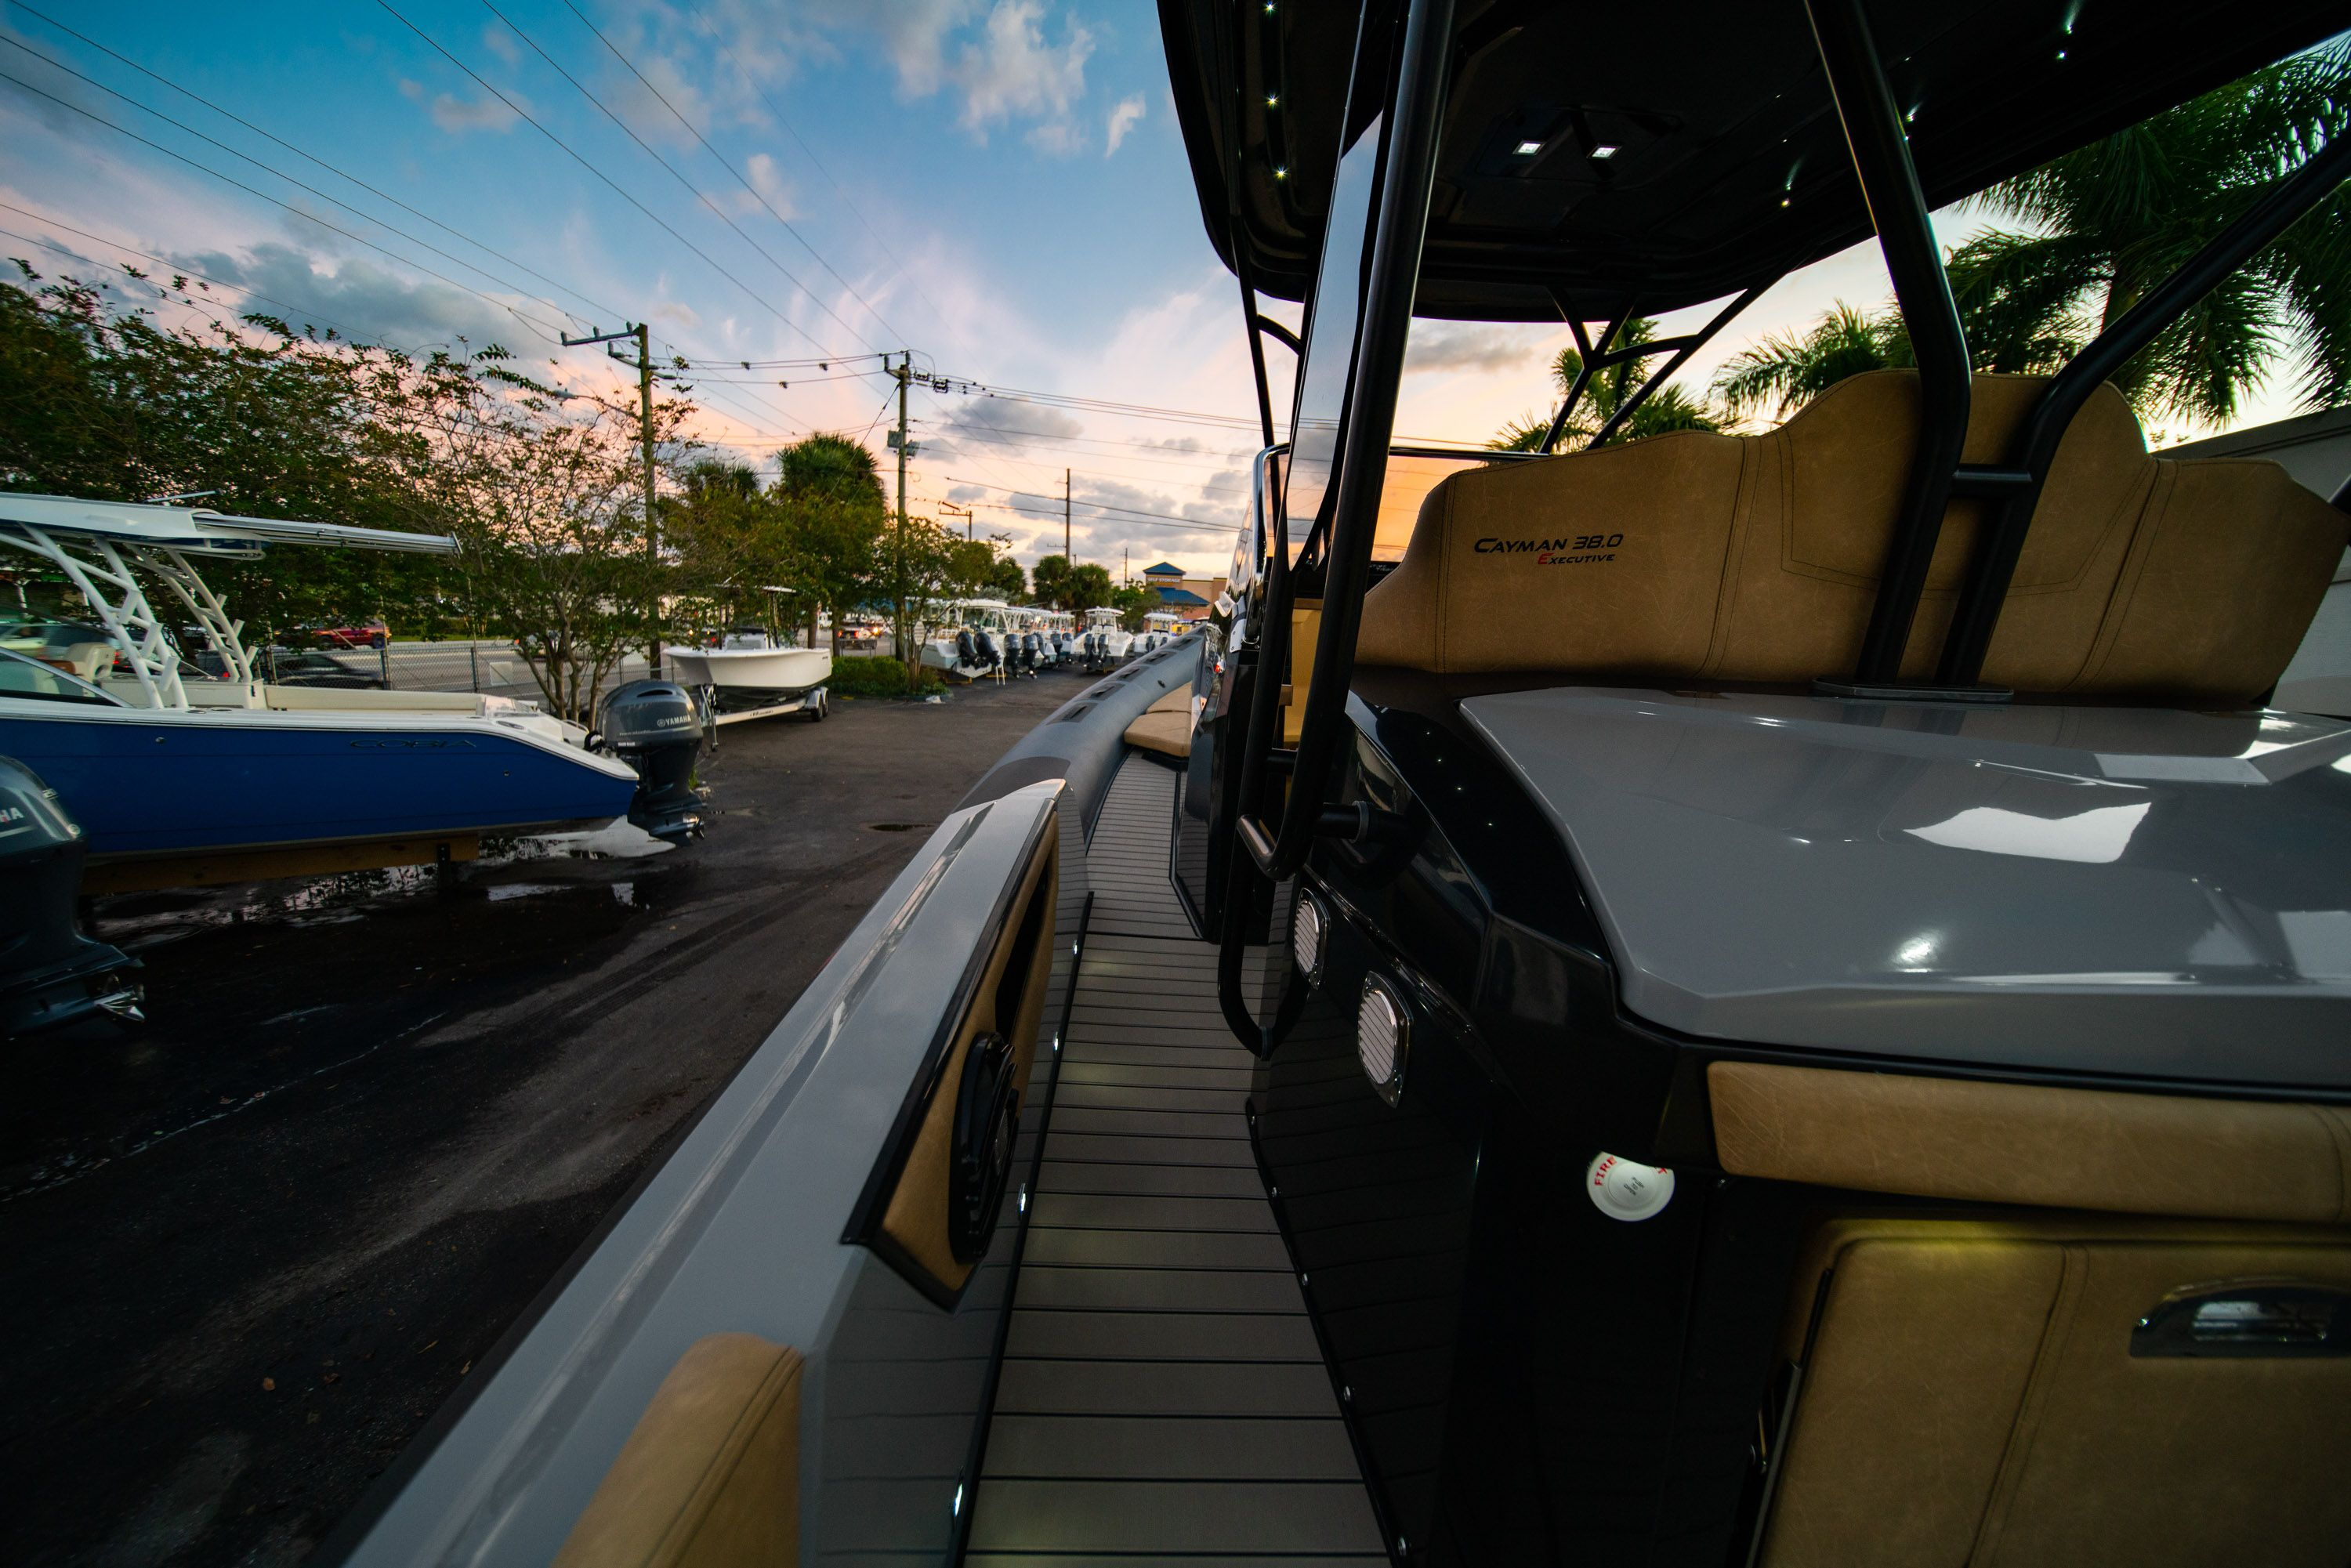 Thumbnail 23 for New 2019 Ranieri Cayman 38 Executive boat for sale in West Palm Beach, FL